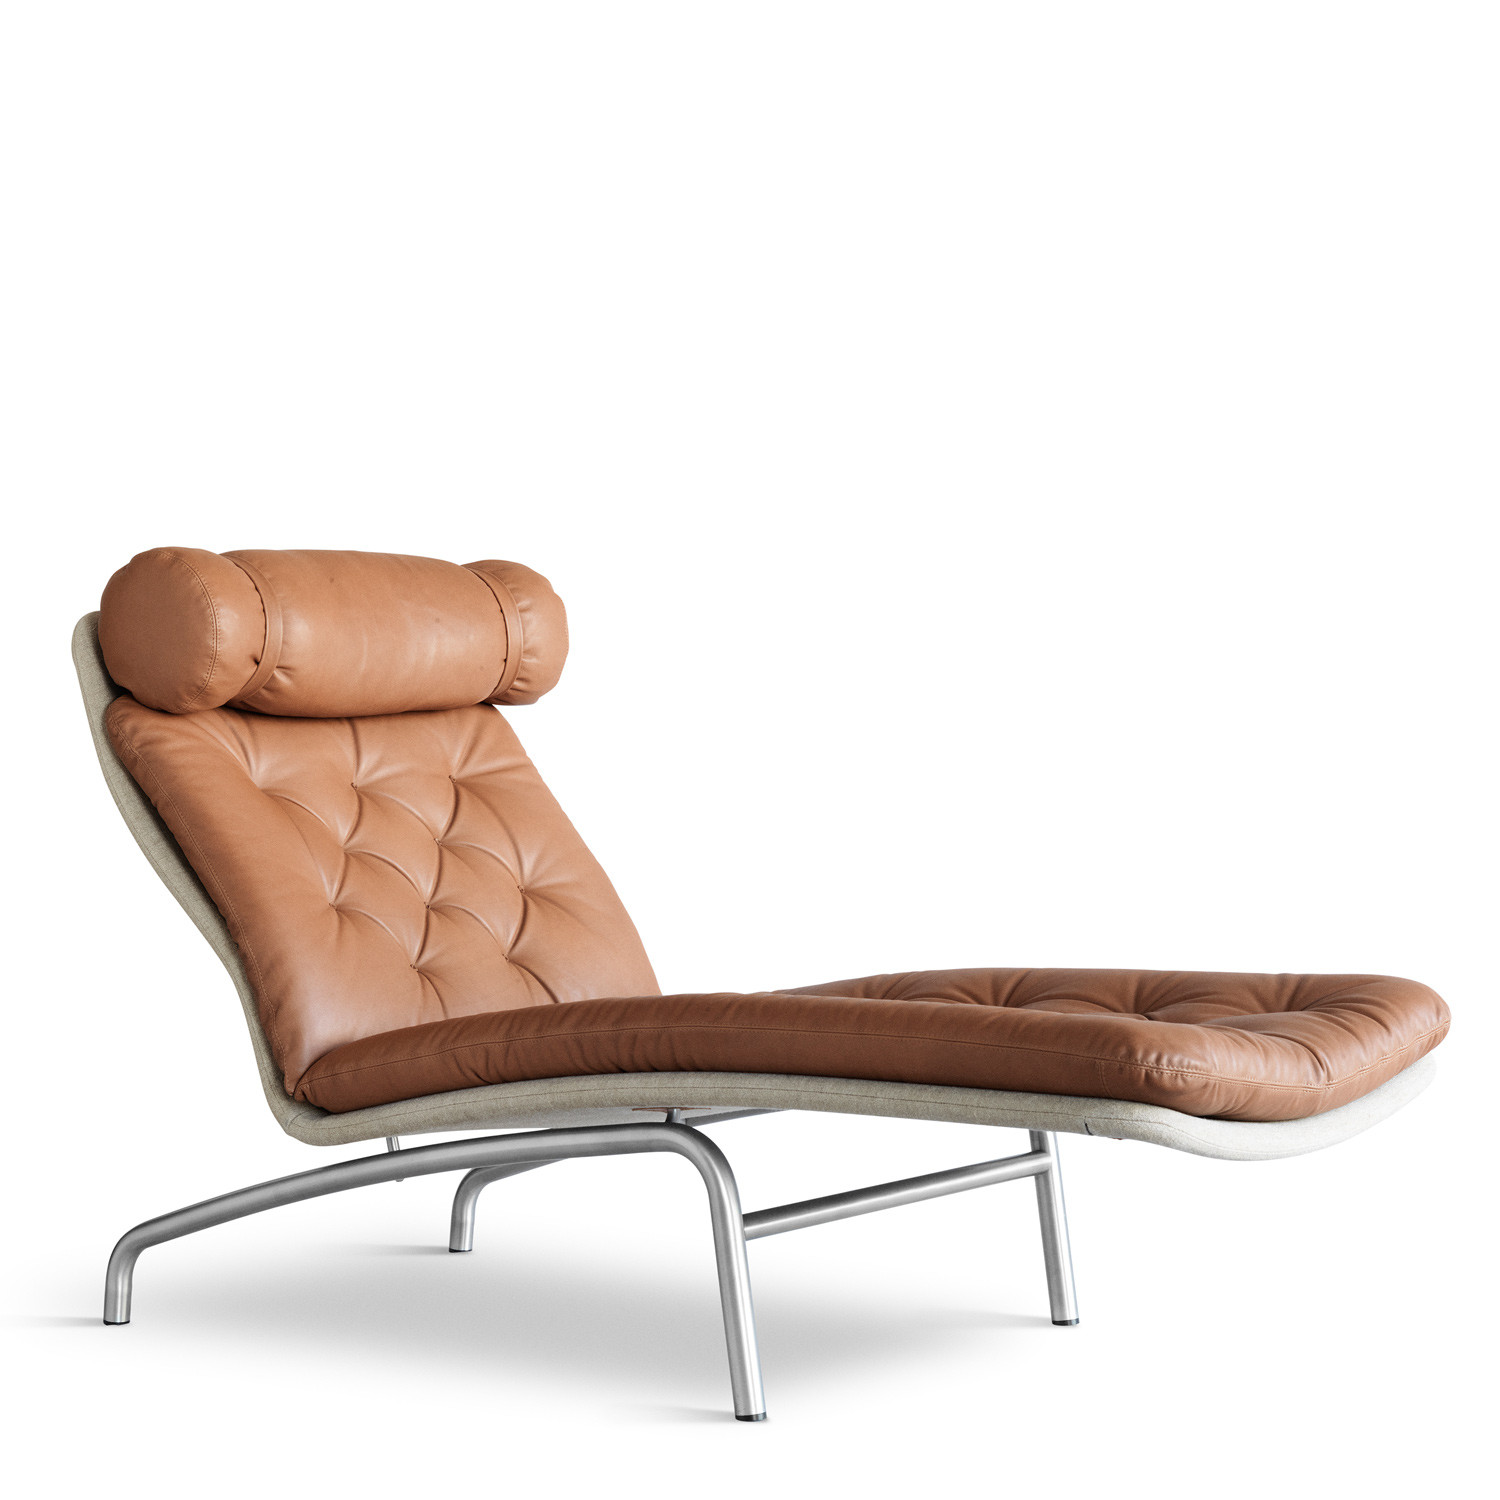 AV Chaise Longue Chair